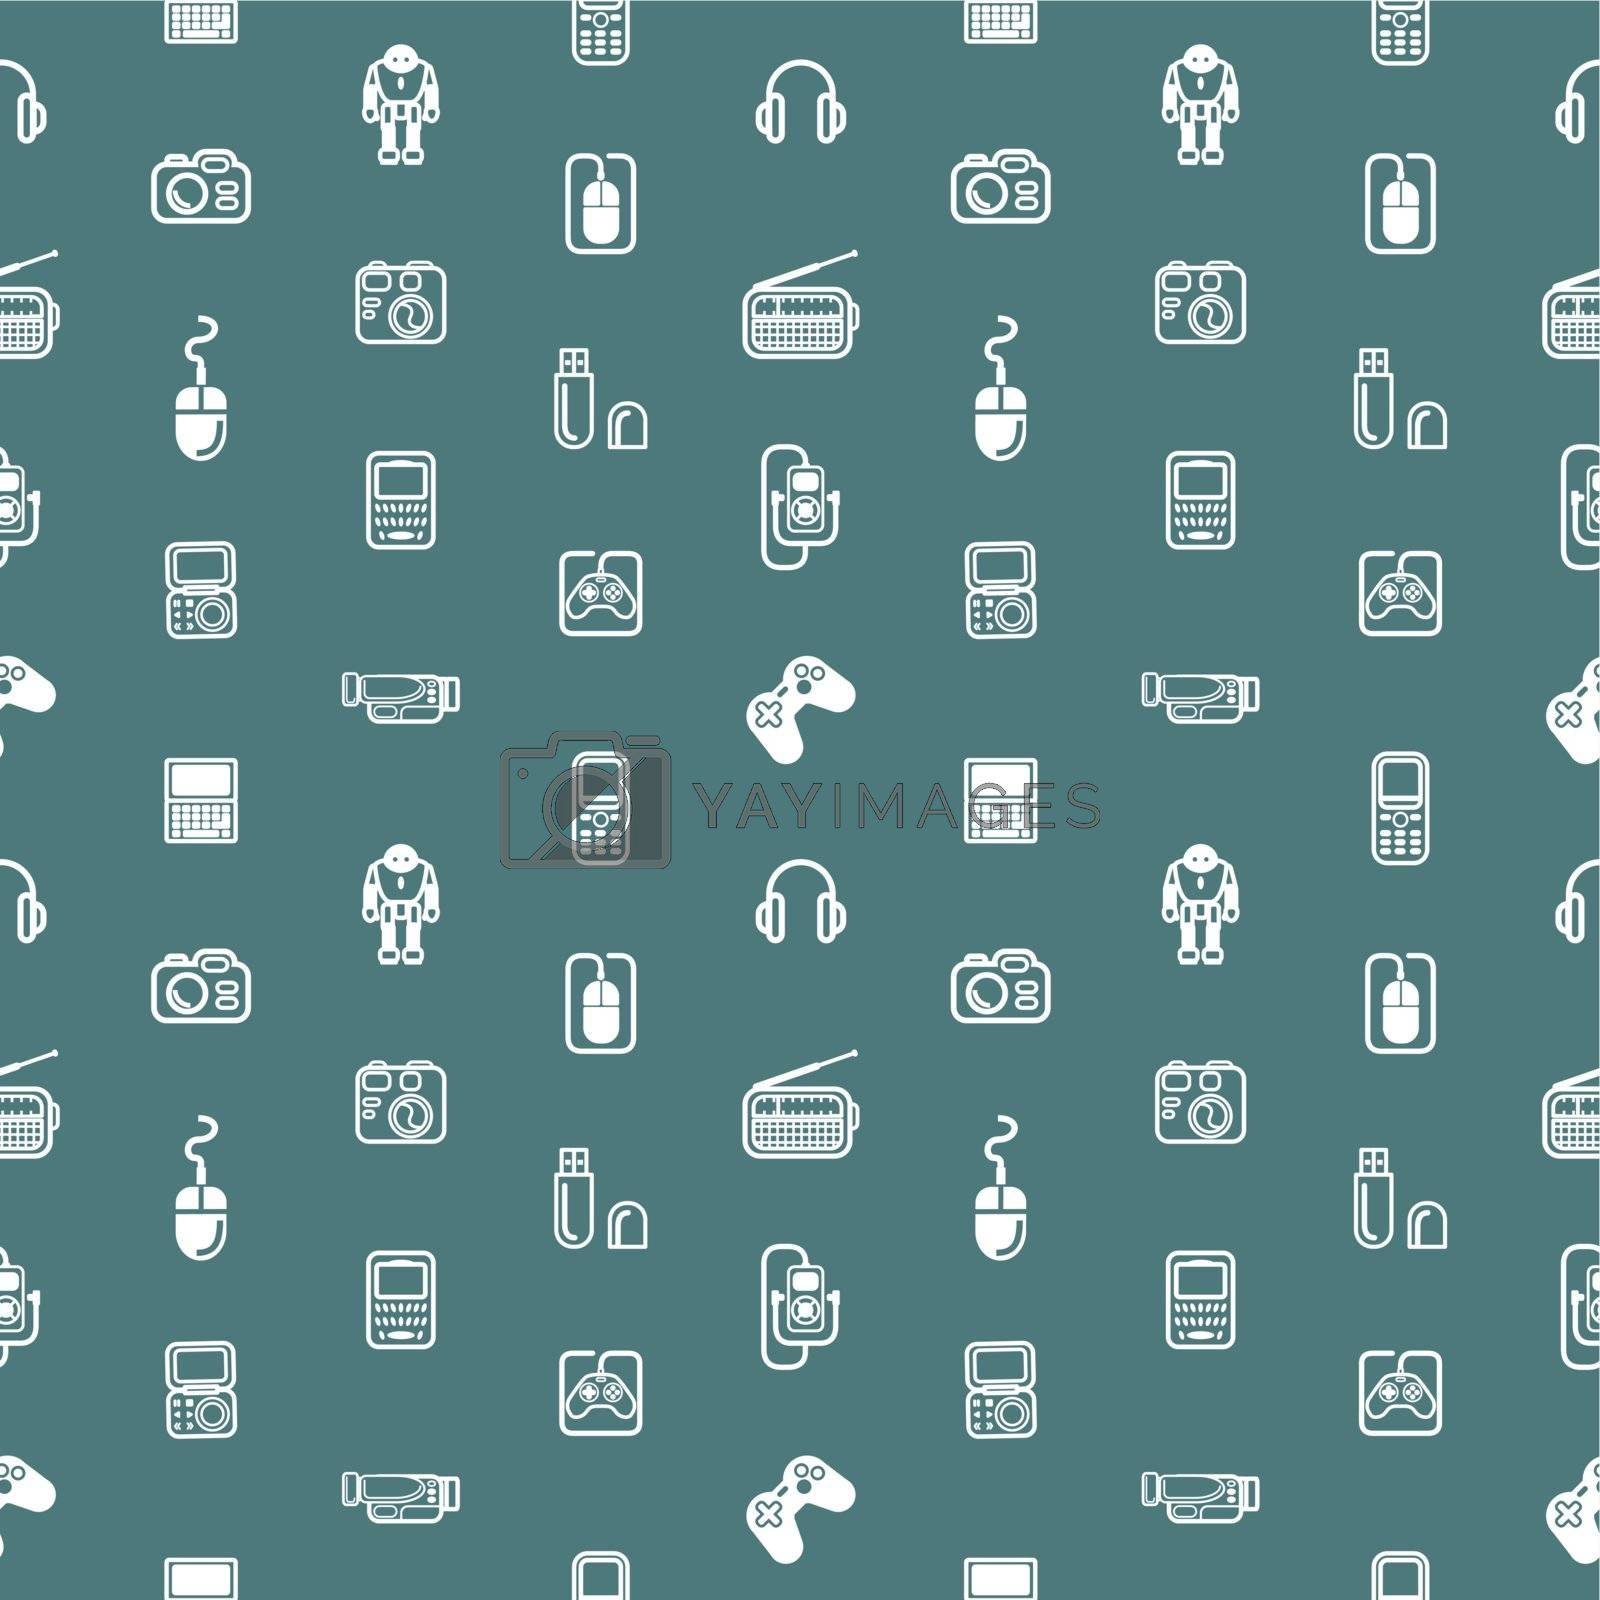 A repeating seamless gadgets and technology background tile texture with lots of different tech and gadget icons